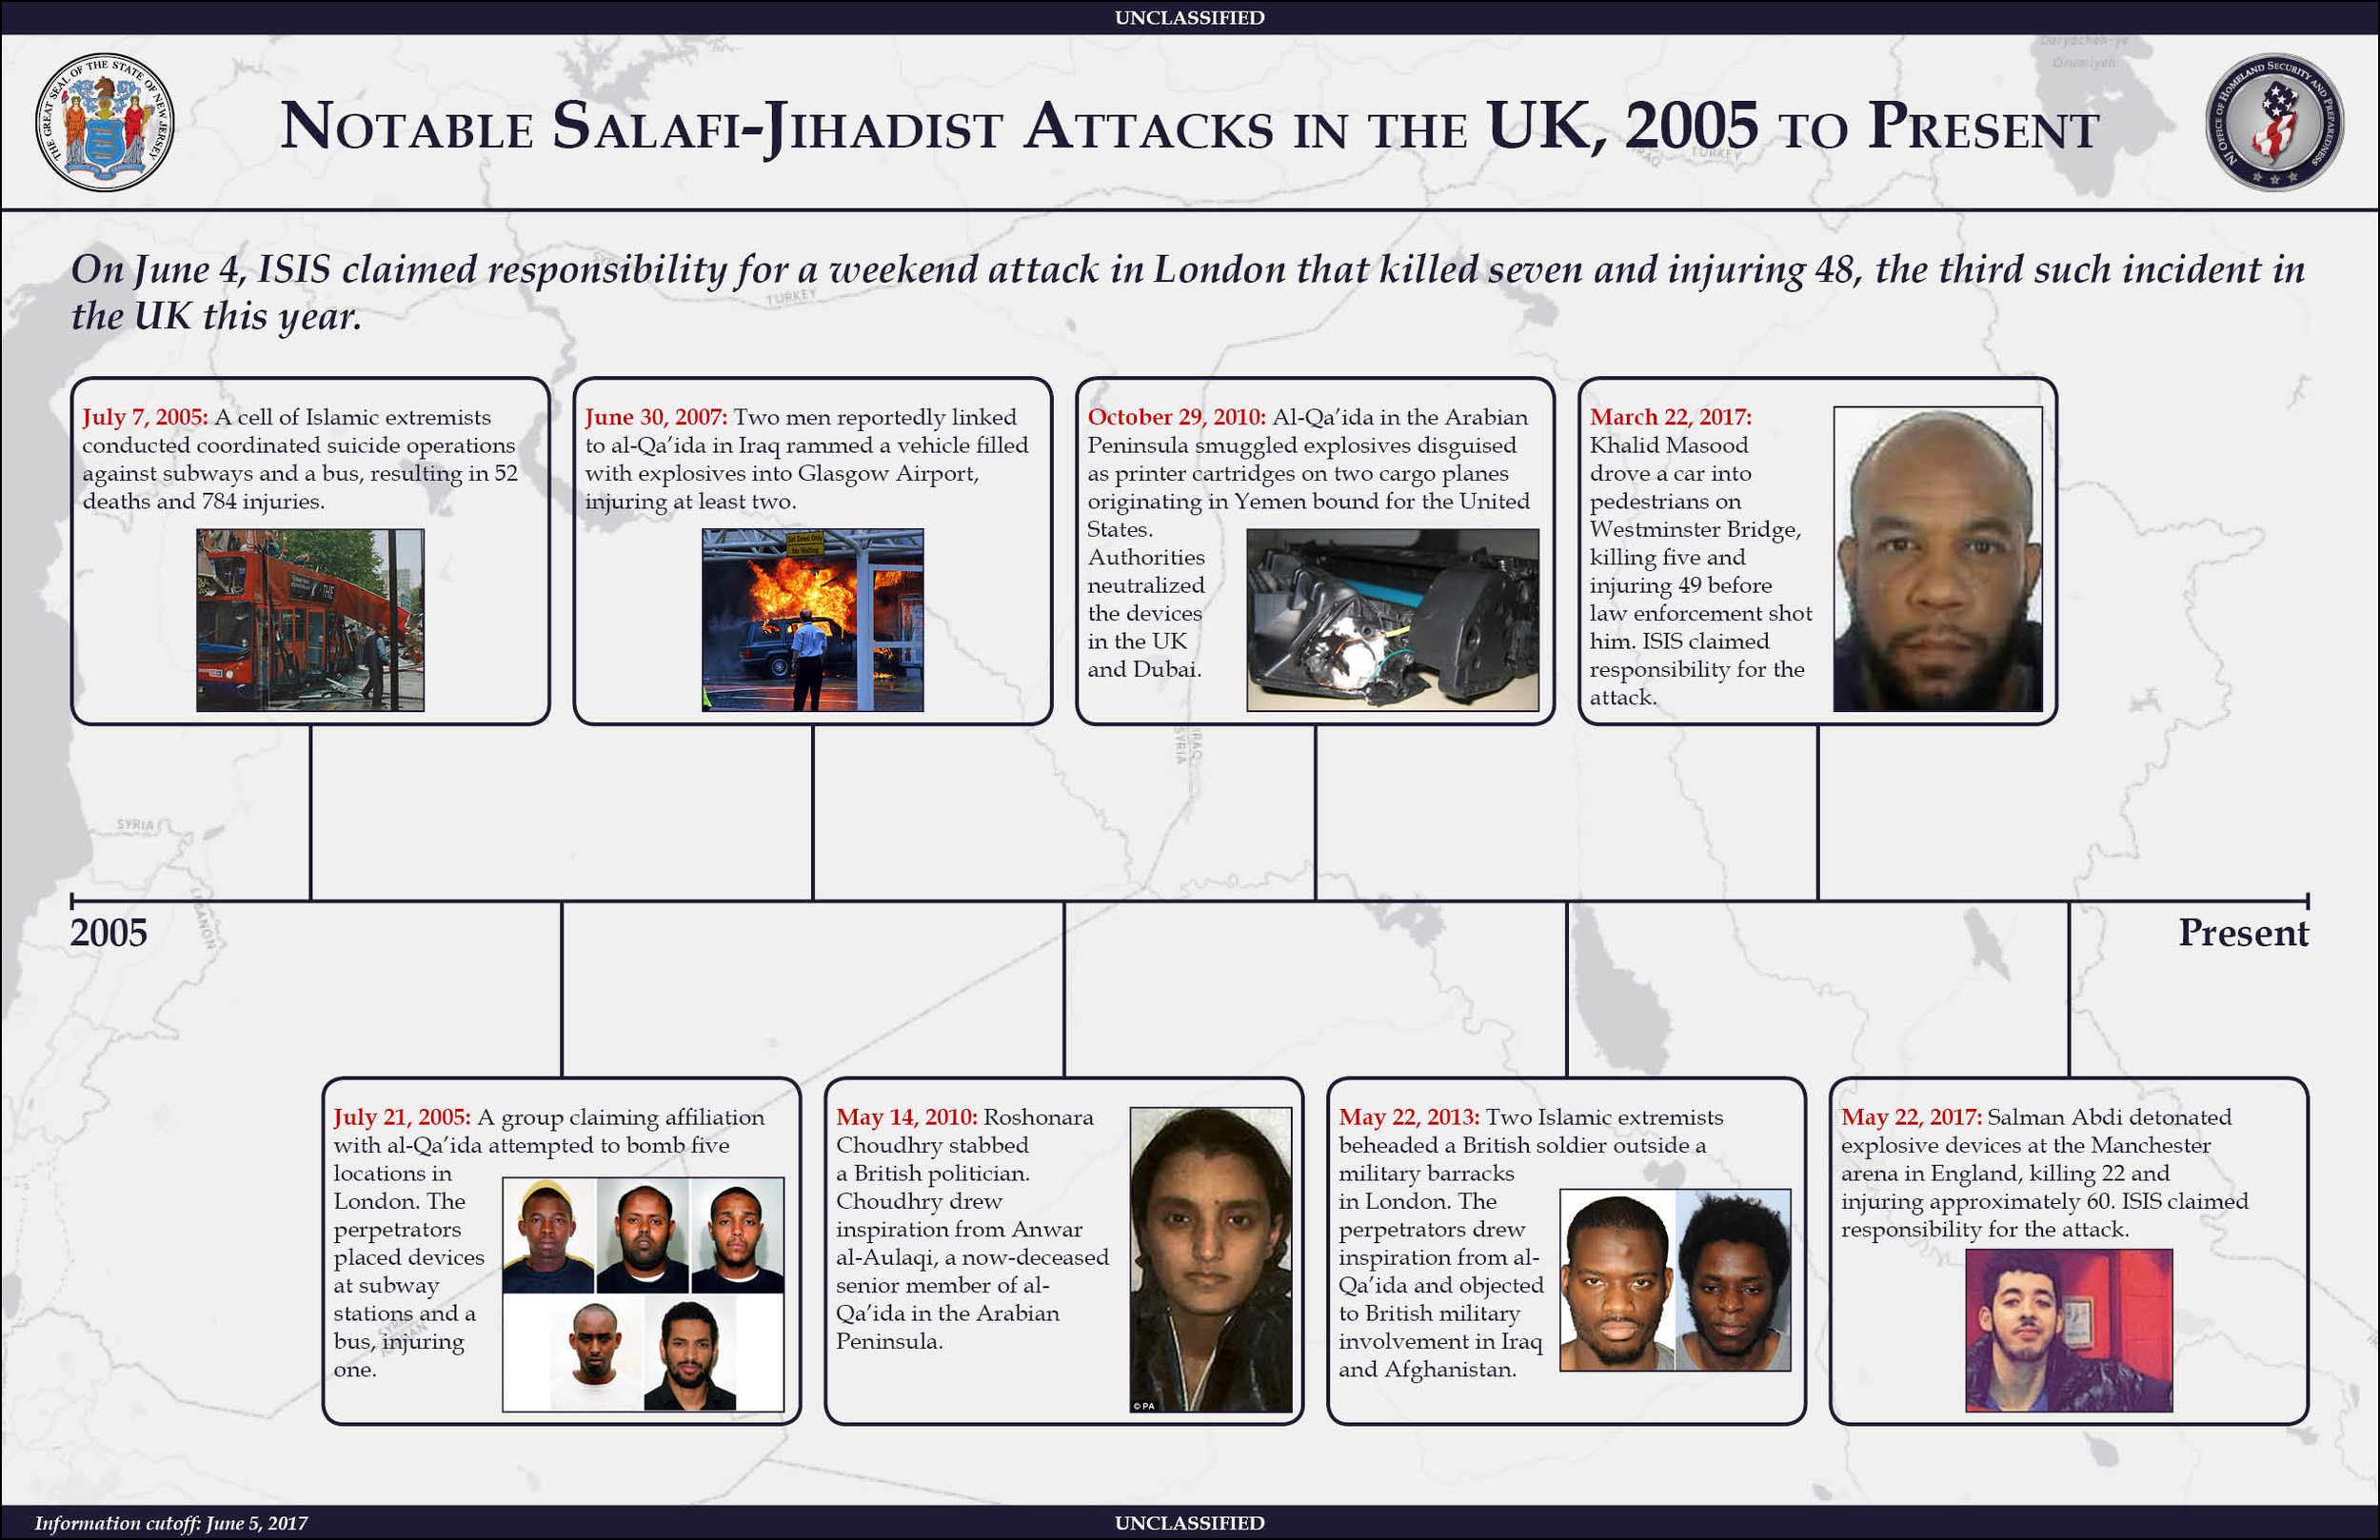 Notable Salafi-Jihadist Attacks in the UK, 2005 to Present - 6.5.17.png